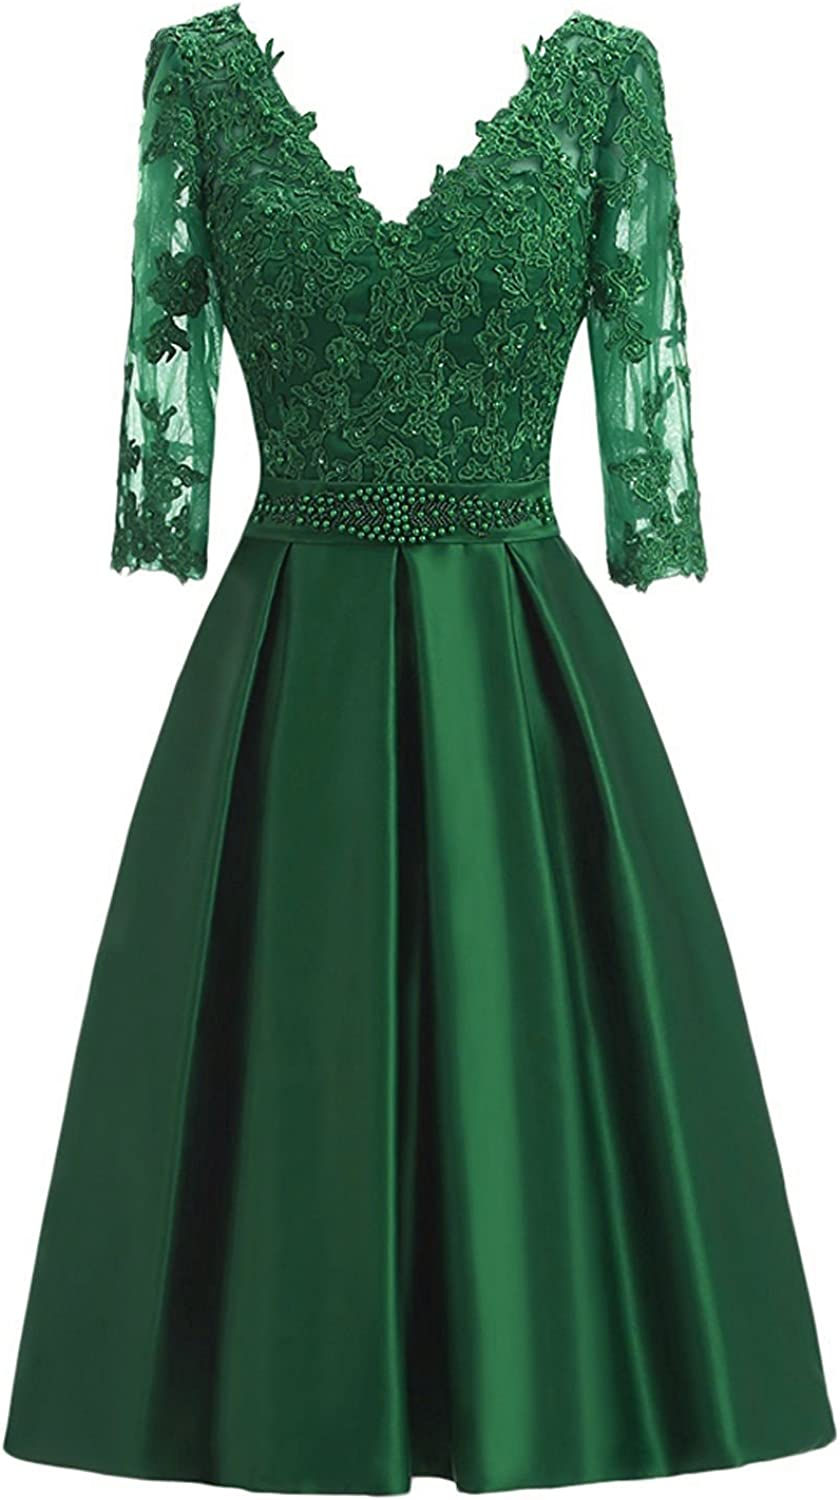 QY Bride Vintage Mother of The Bride Dresses with Half Sleeve Prom Gowns